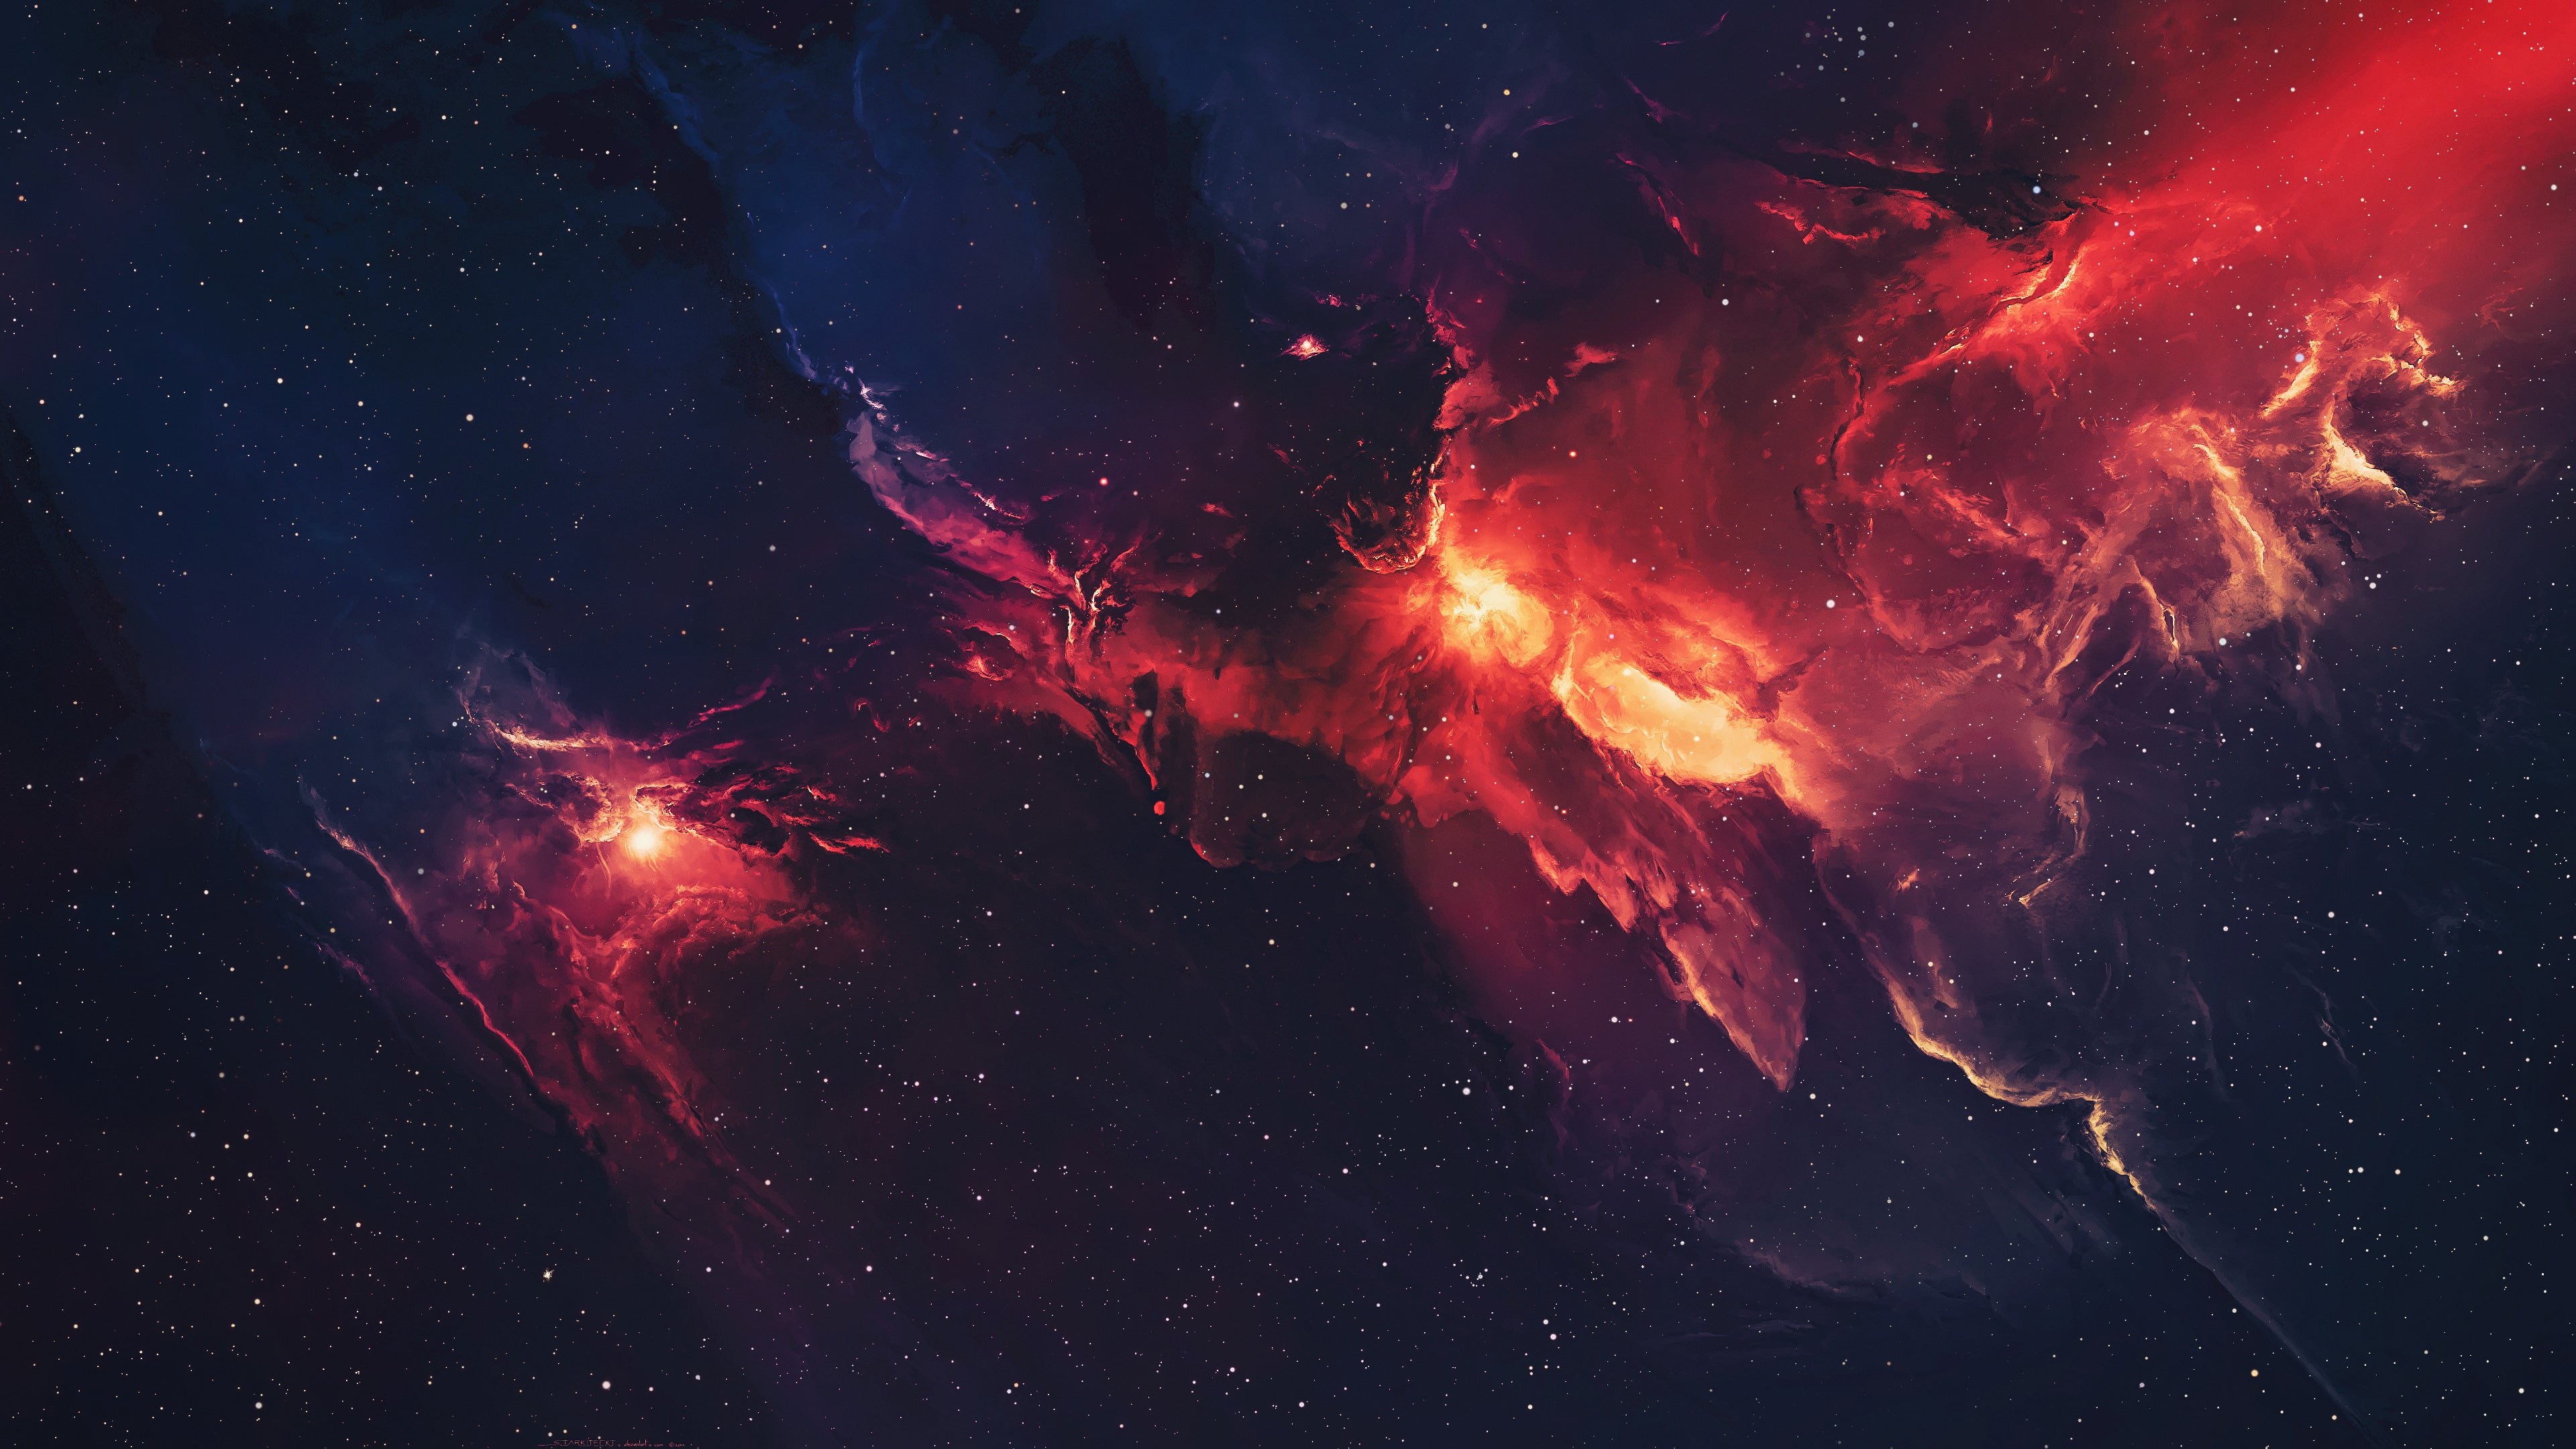 Red And Blue Nebula 4k Wallpaper